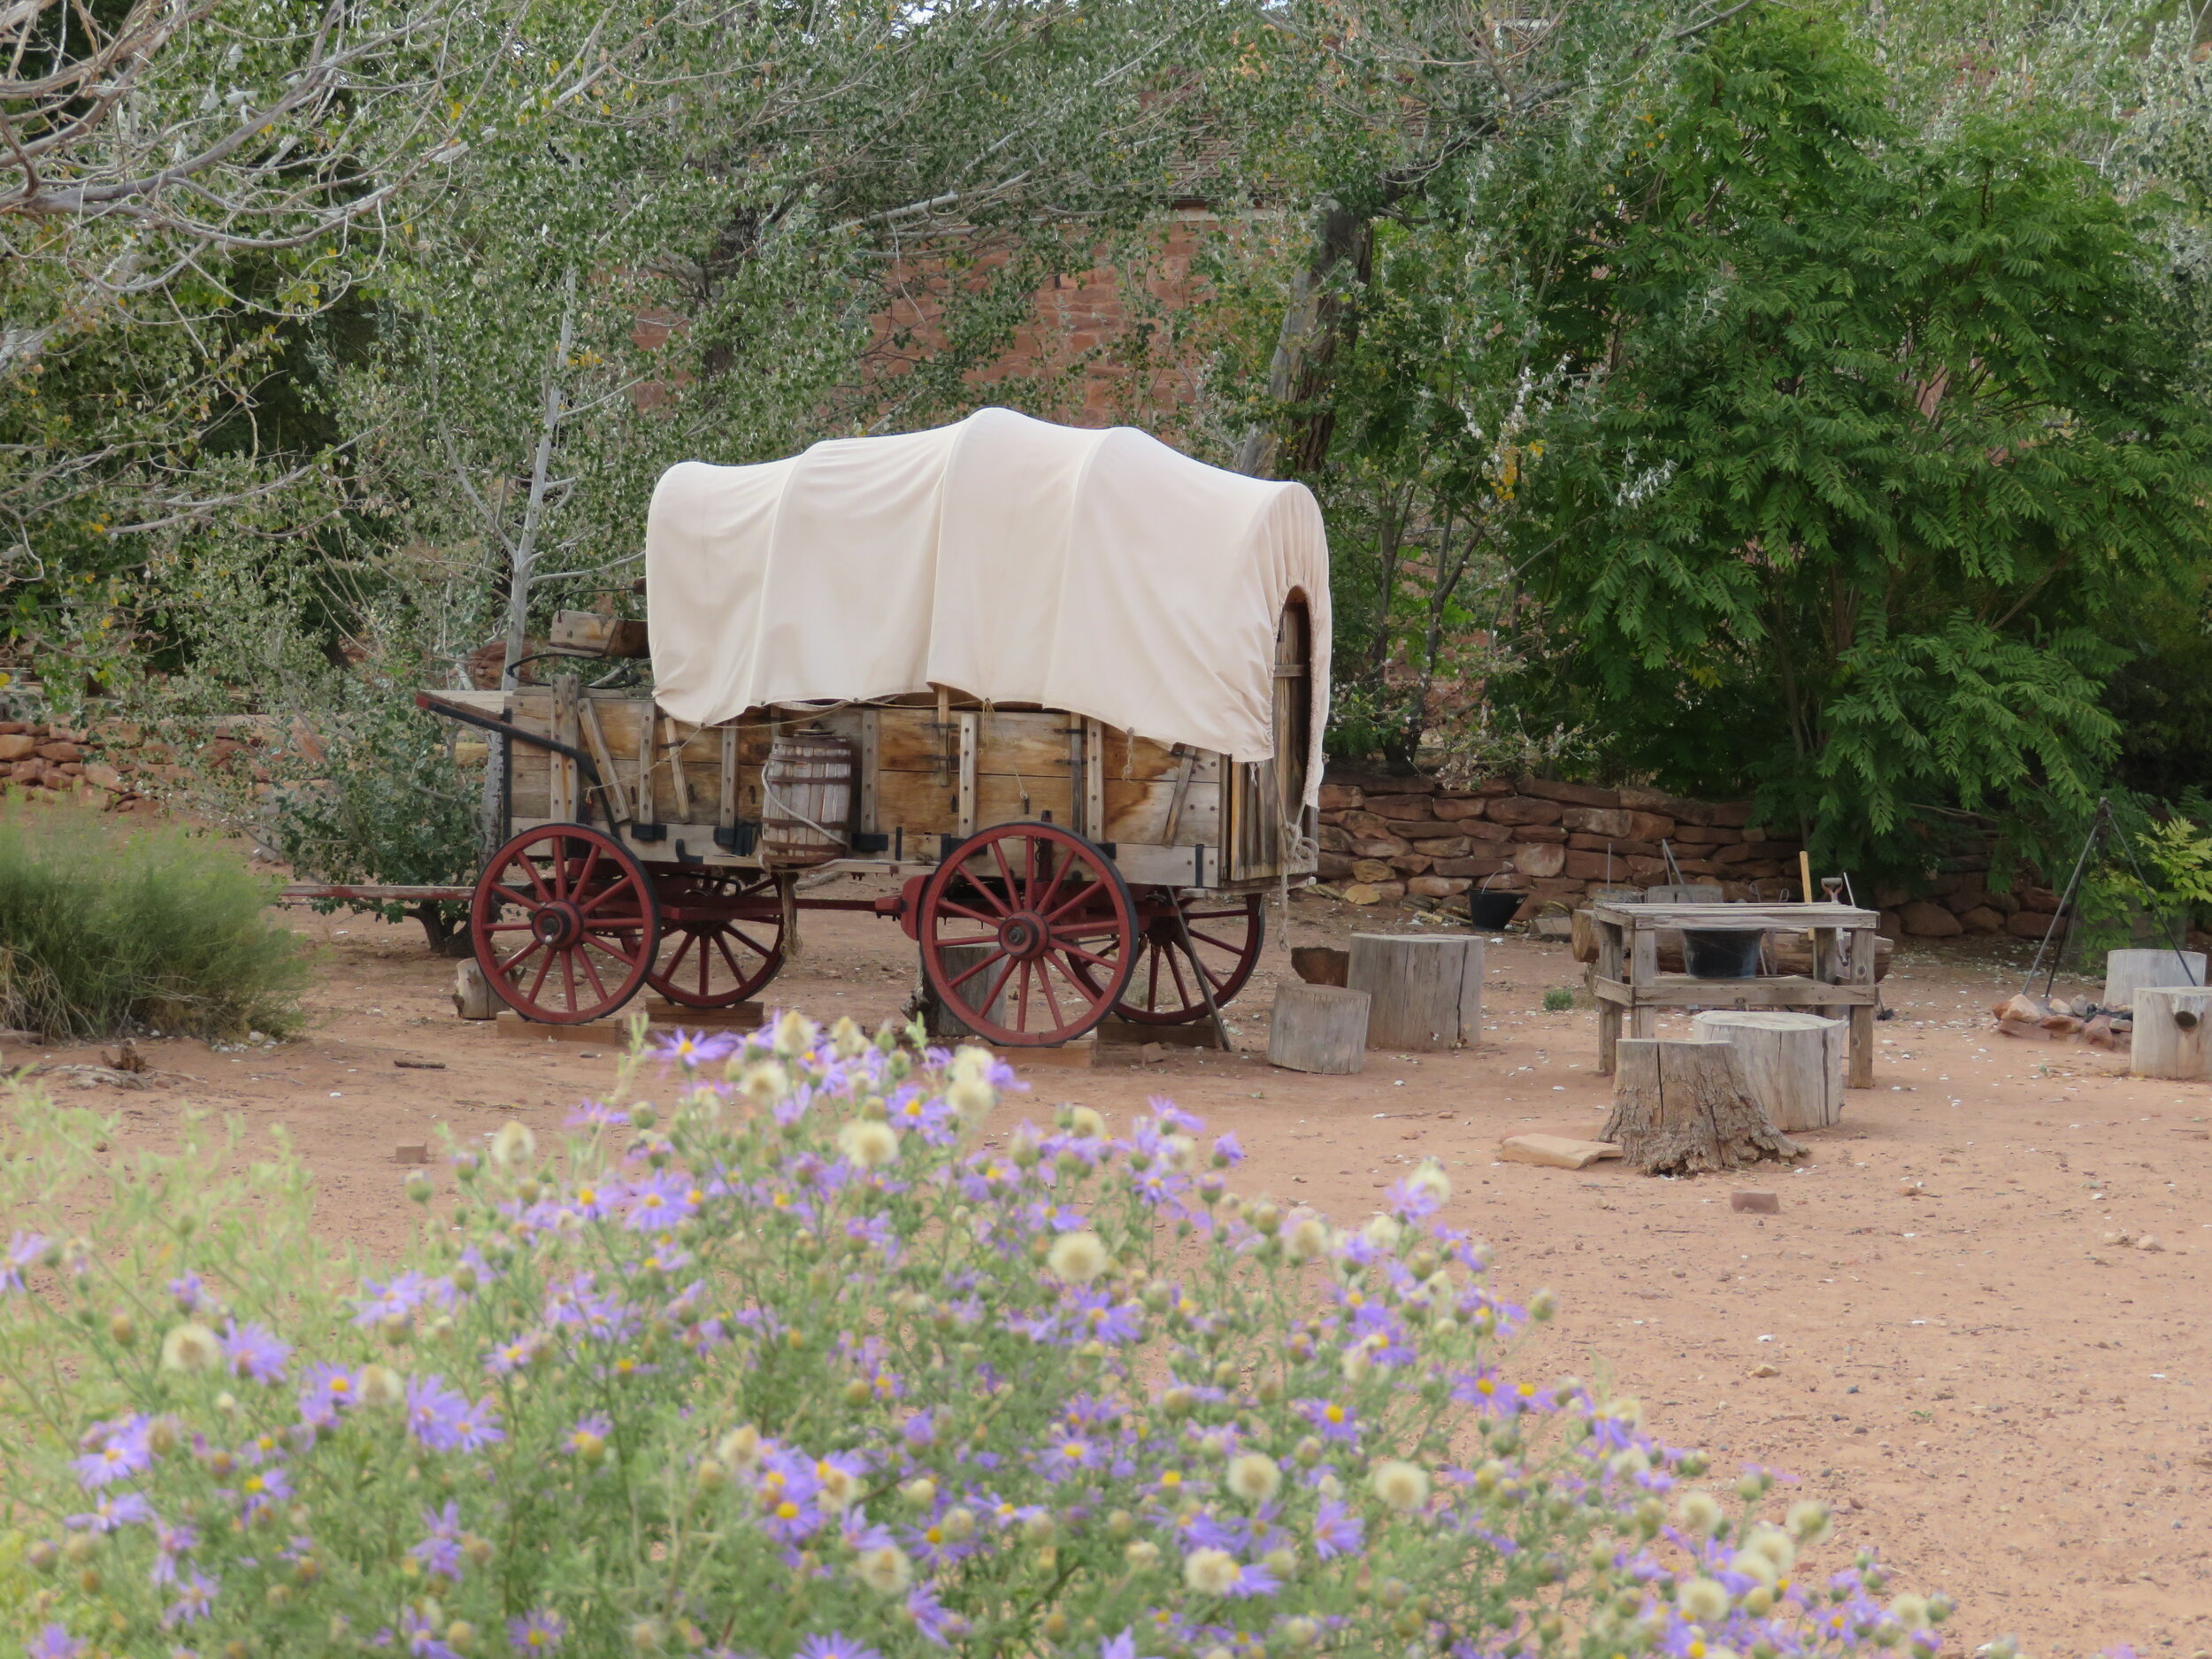 Pioneer life at the Pipe Springs National Monument